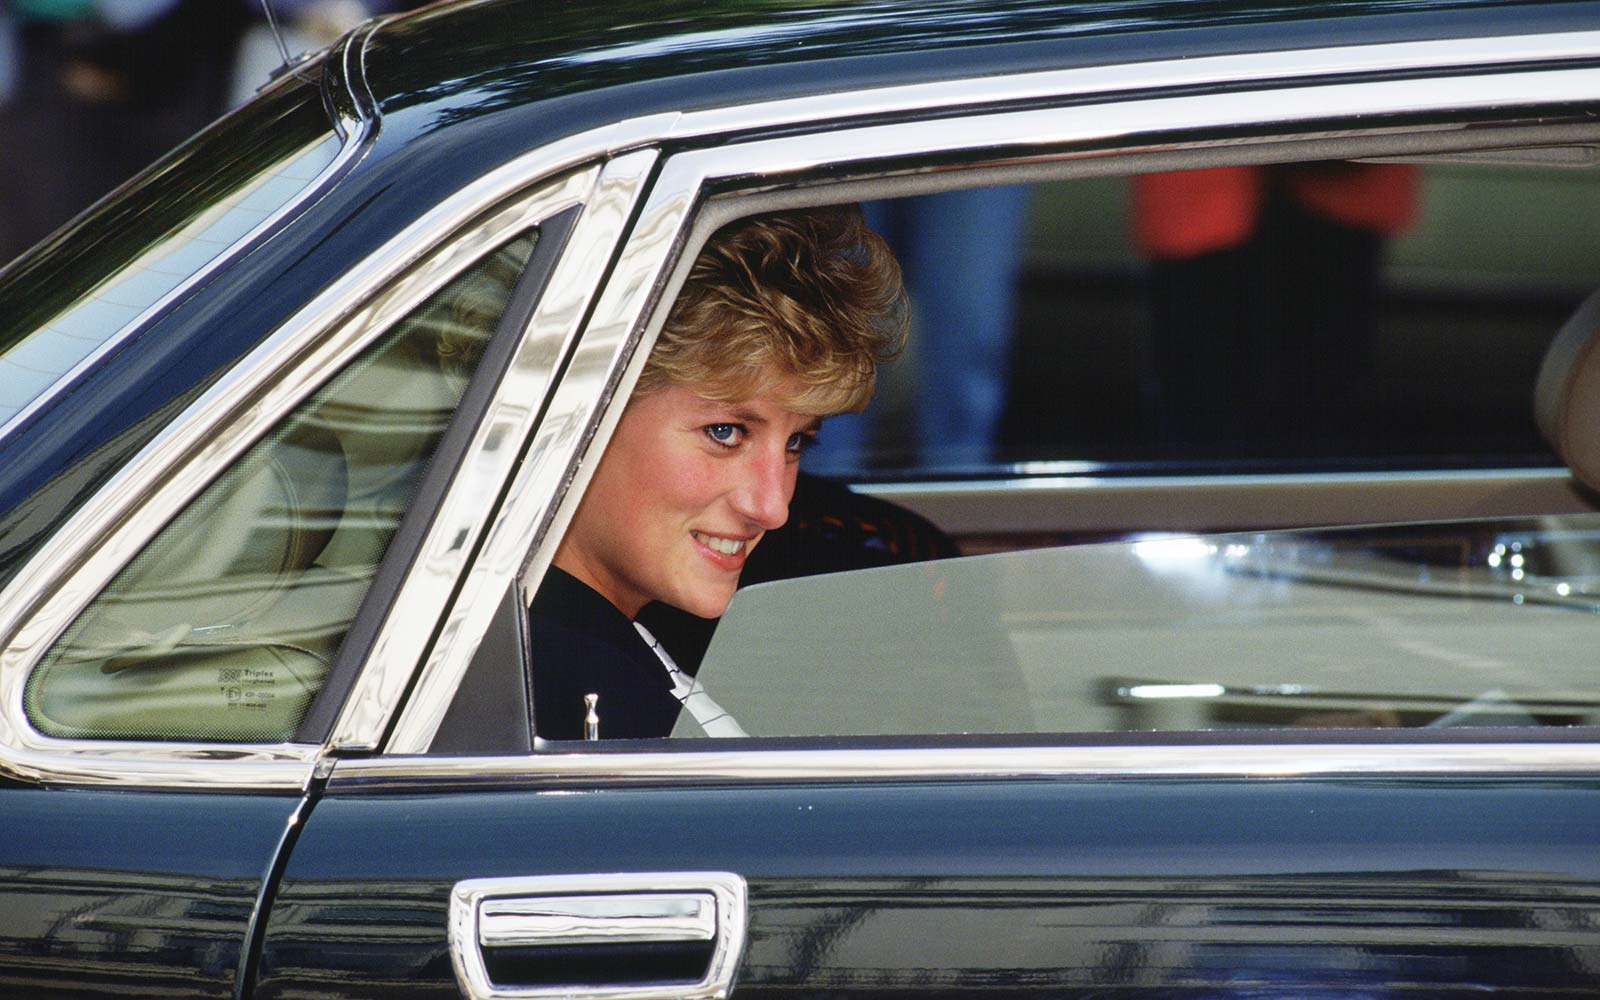 Princess Diana arrives at the headquarters of the Red Cross organization in London